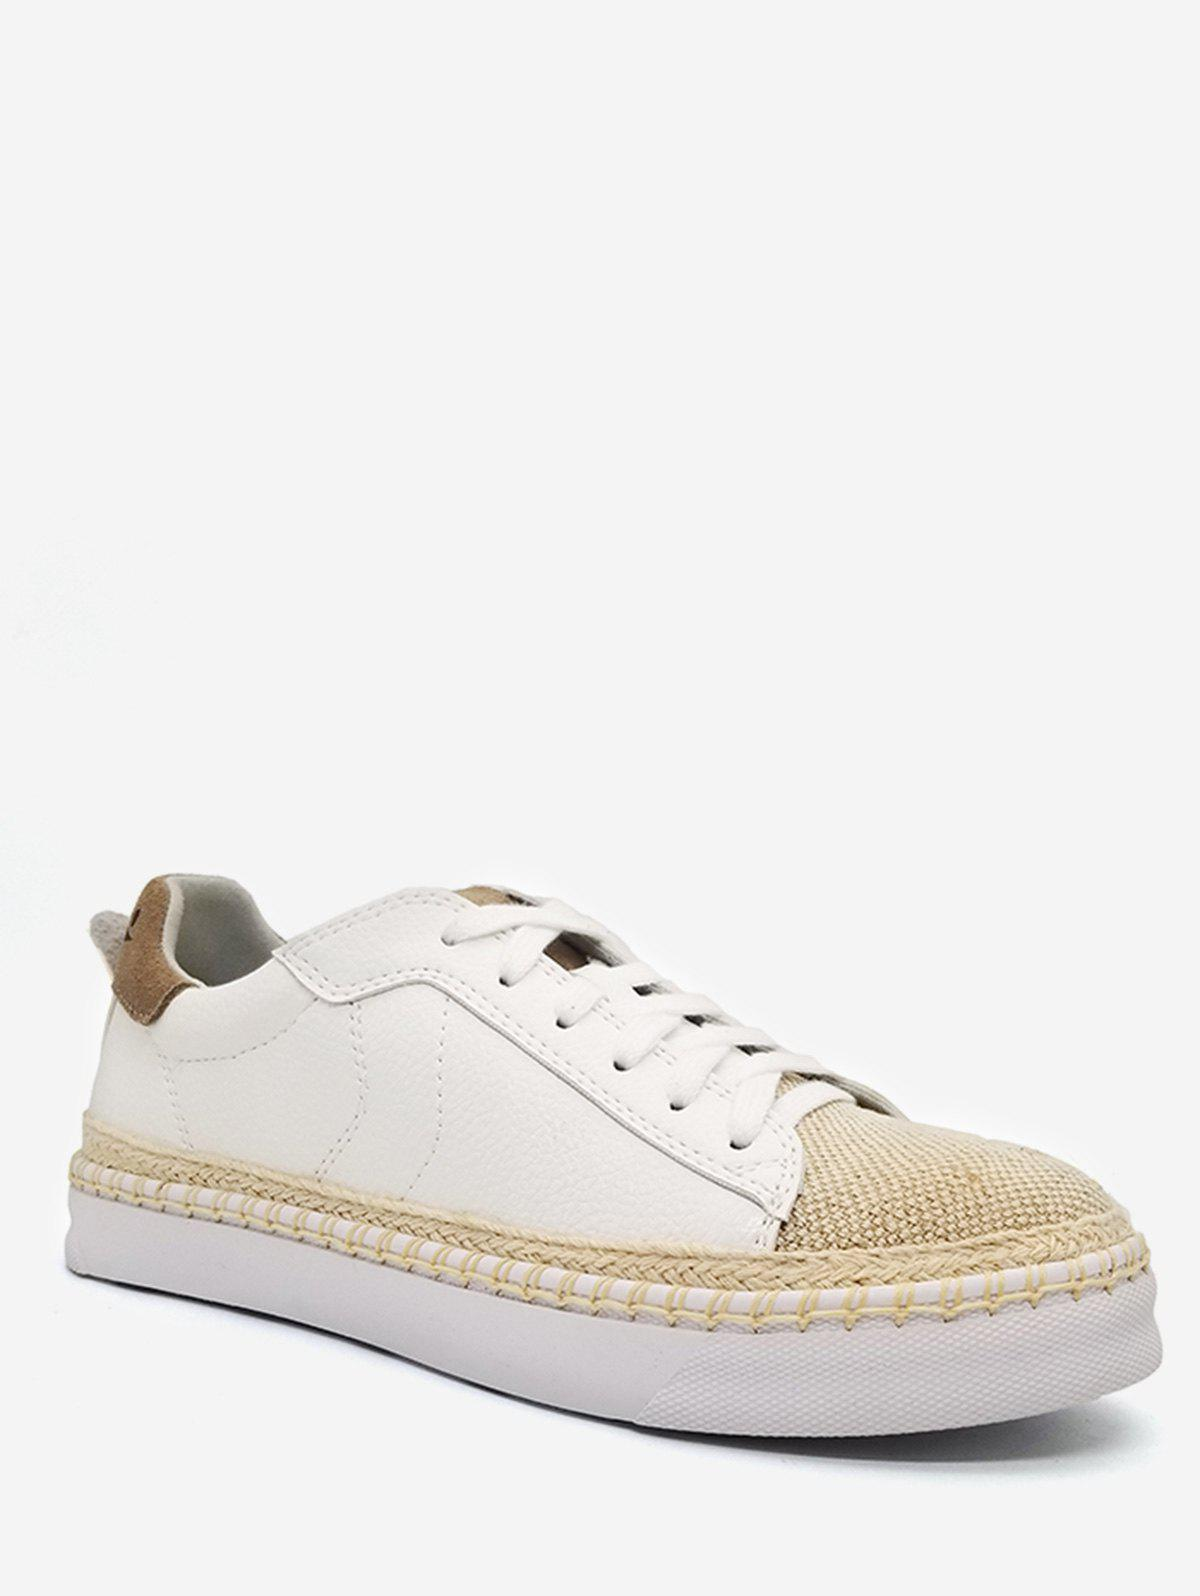 Store Vintage Lace Up Espadrille Flat Sneakers